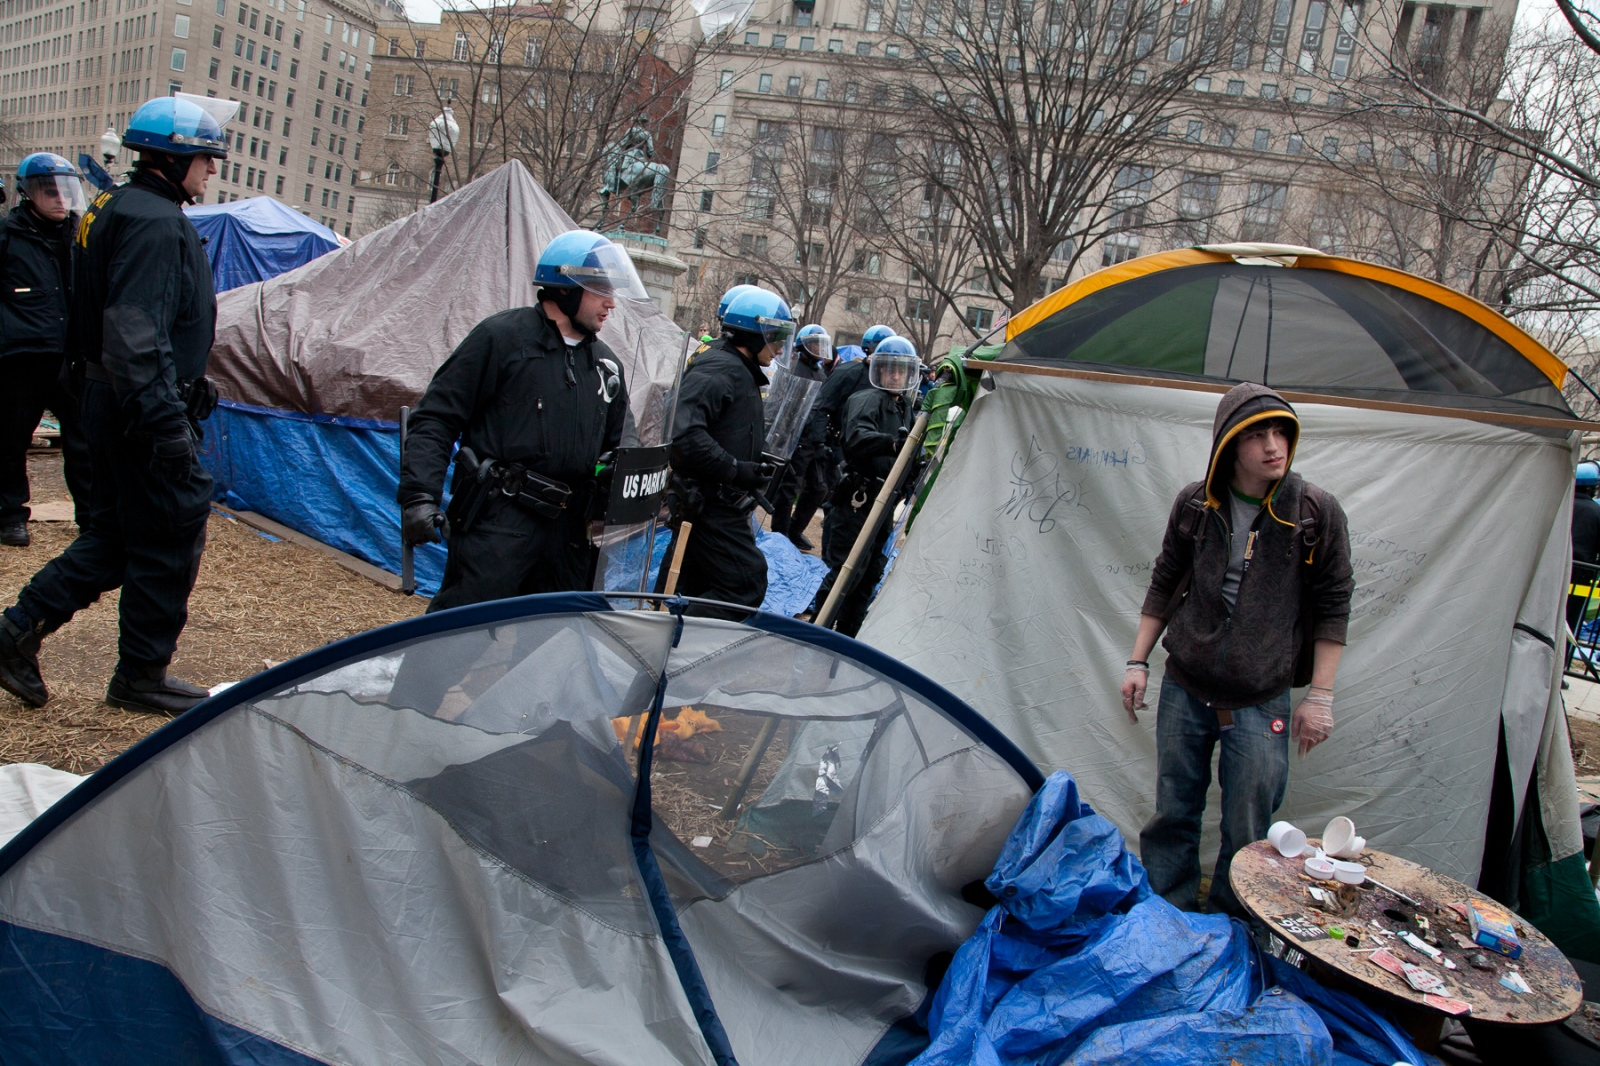 An Occupy D.C. protestor tries to figure his next move as U.S. Park Police move through the camp in preparation for removing tents and anything else deemed illegal to keep on federal park property.